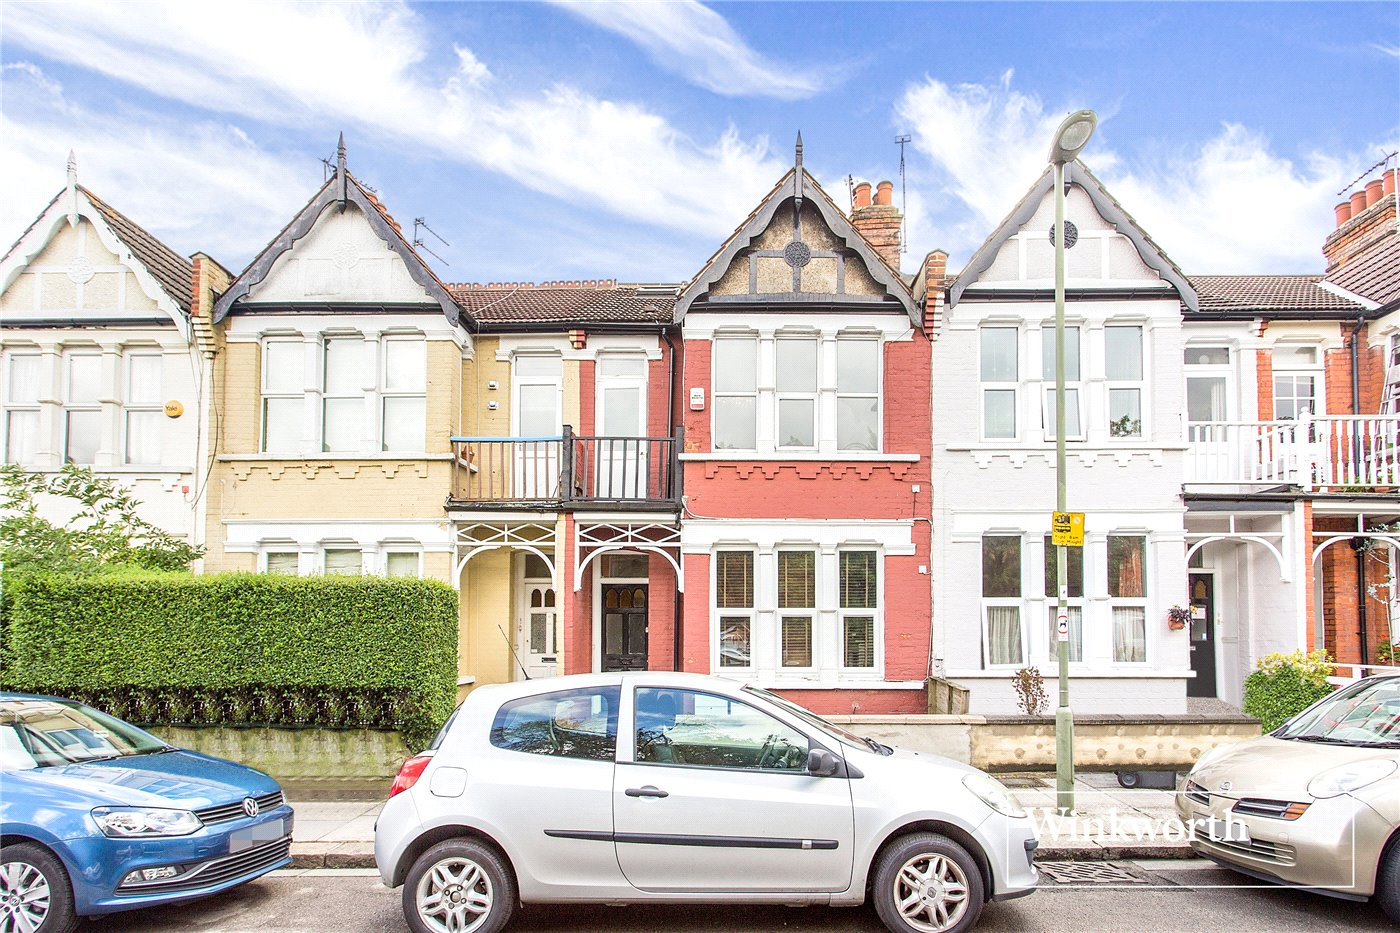 3 Bedrooms Flat for sale in Squires Lane, Finchley, London, N3